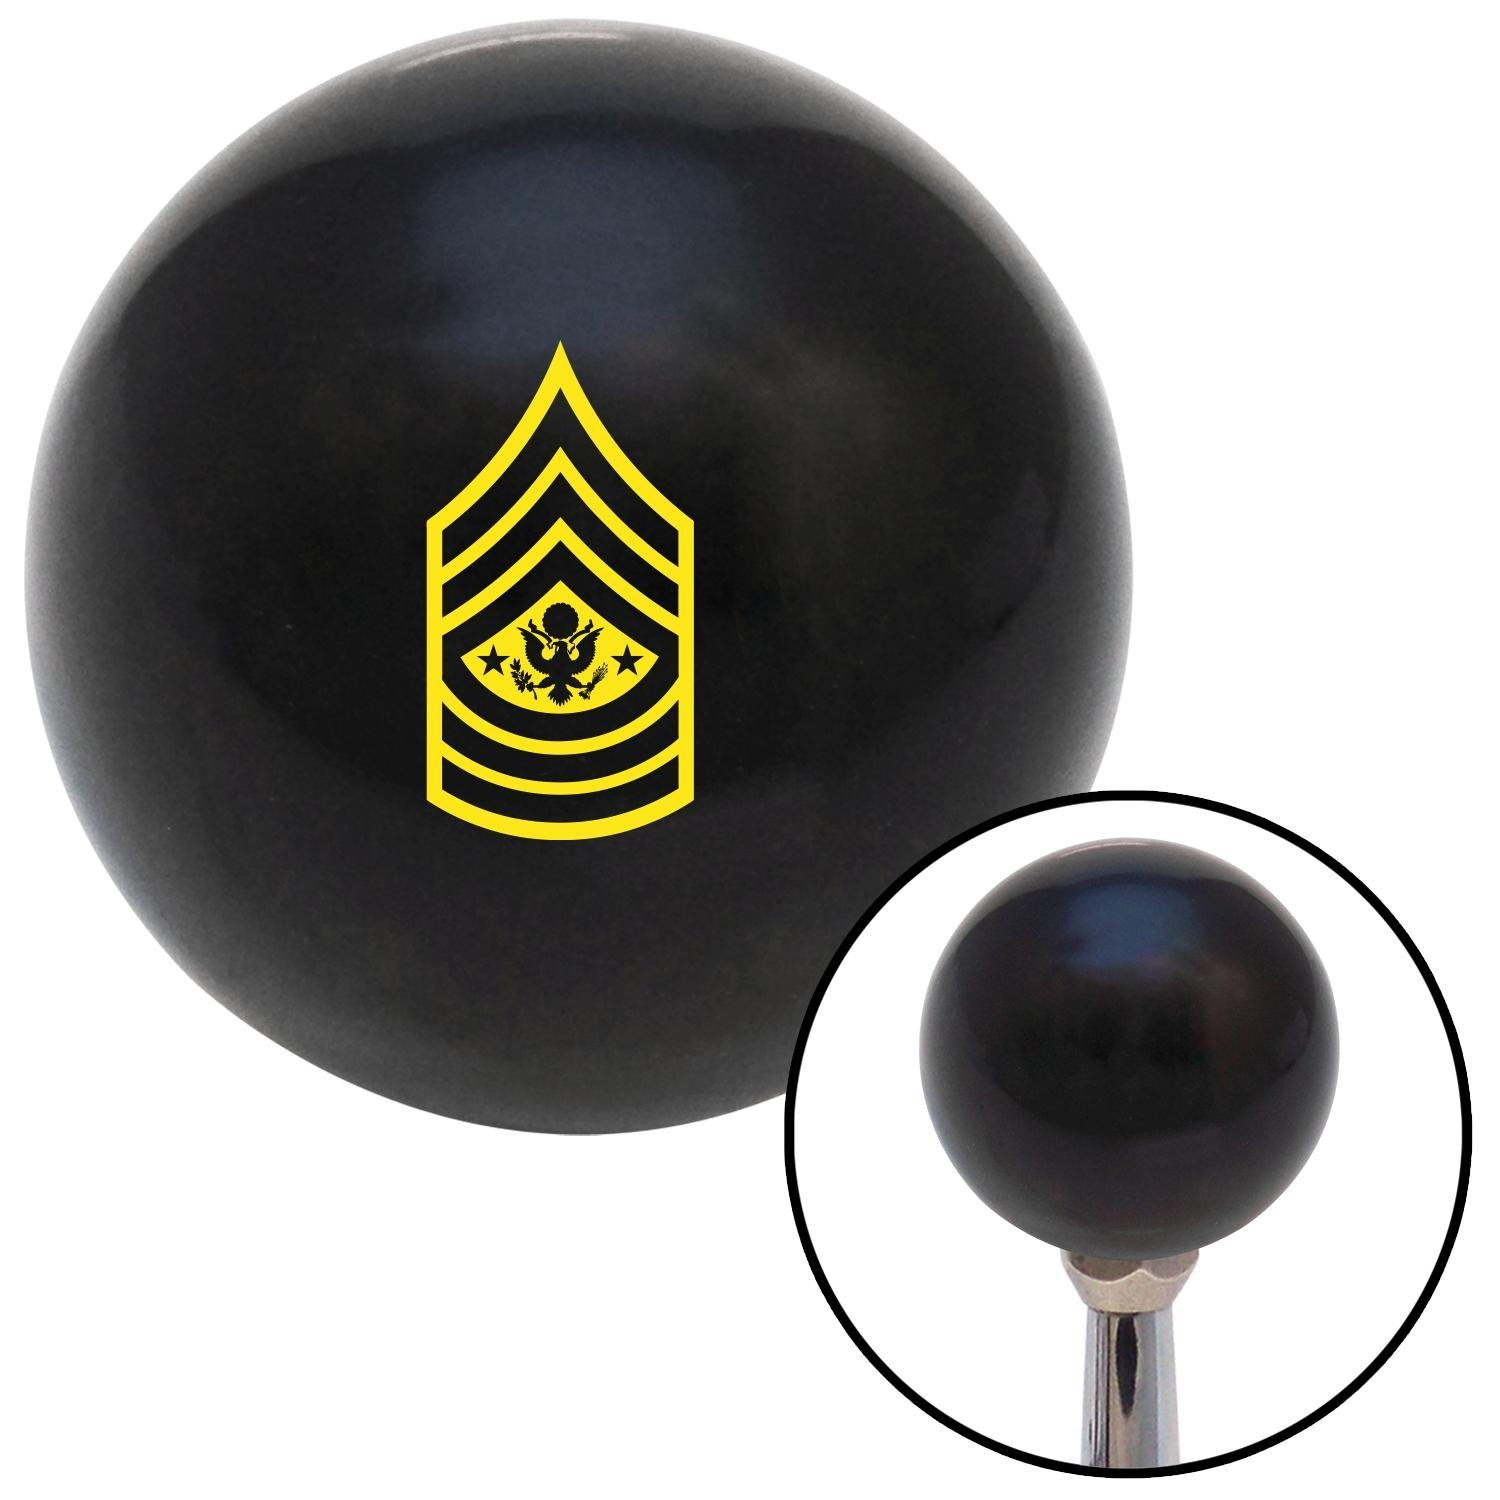 American Shifter 34987 Ivory Shift Knob with 16mm x 1.5 Insert Black Hawaiian Flower 9